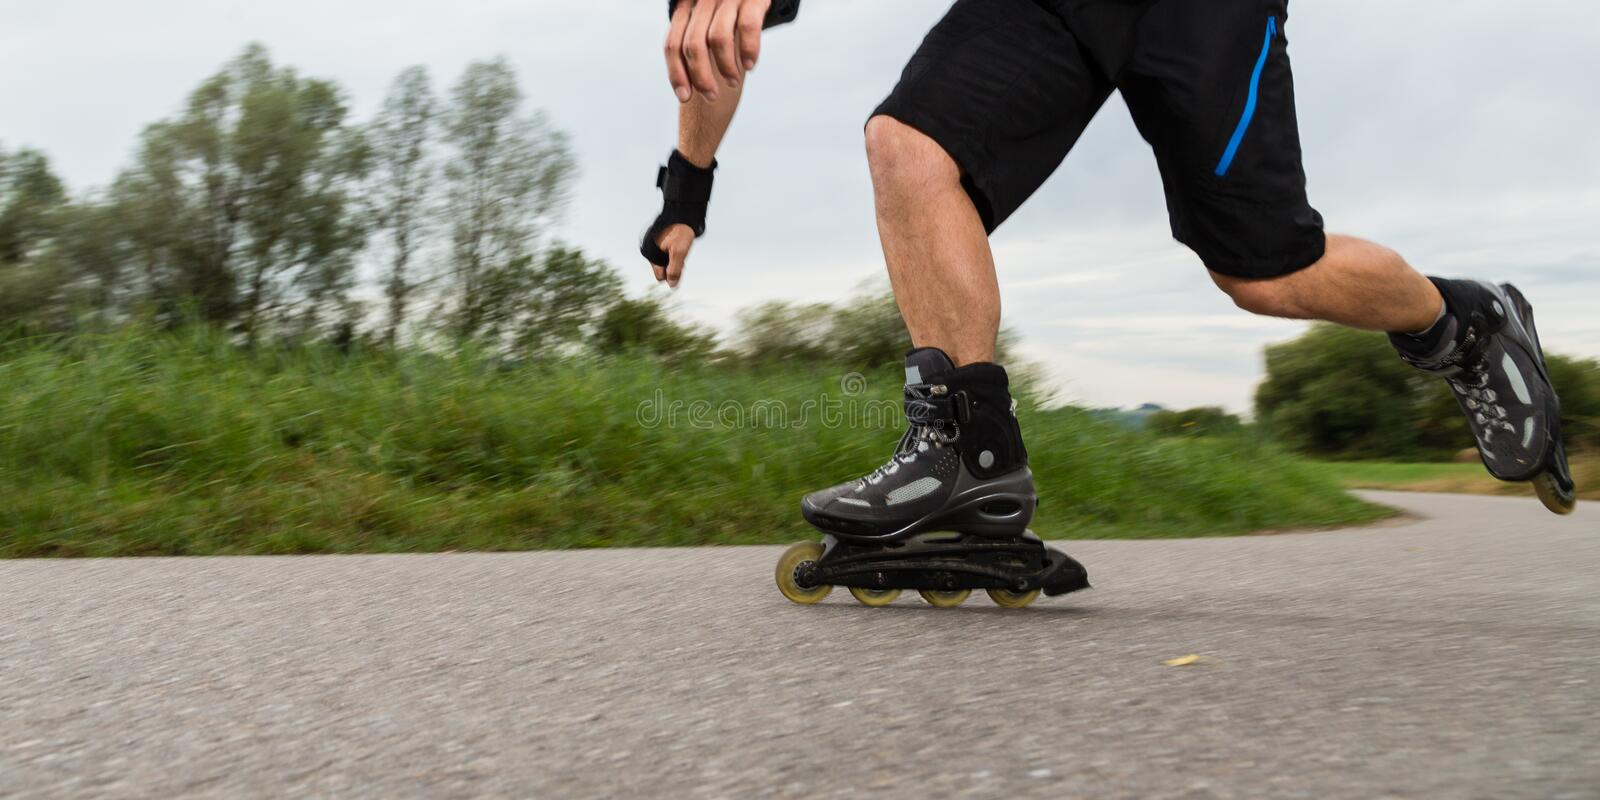 Roller blading. Athlete is blading on skates royalty free stock photography